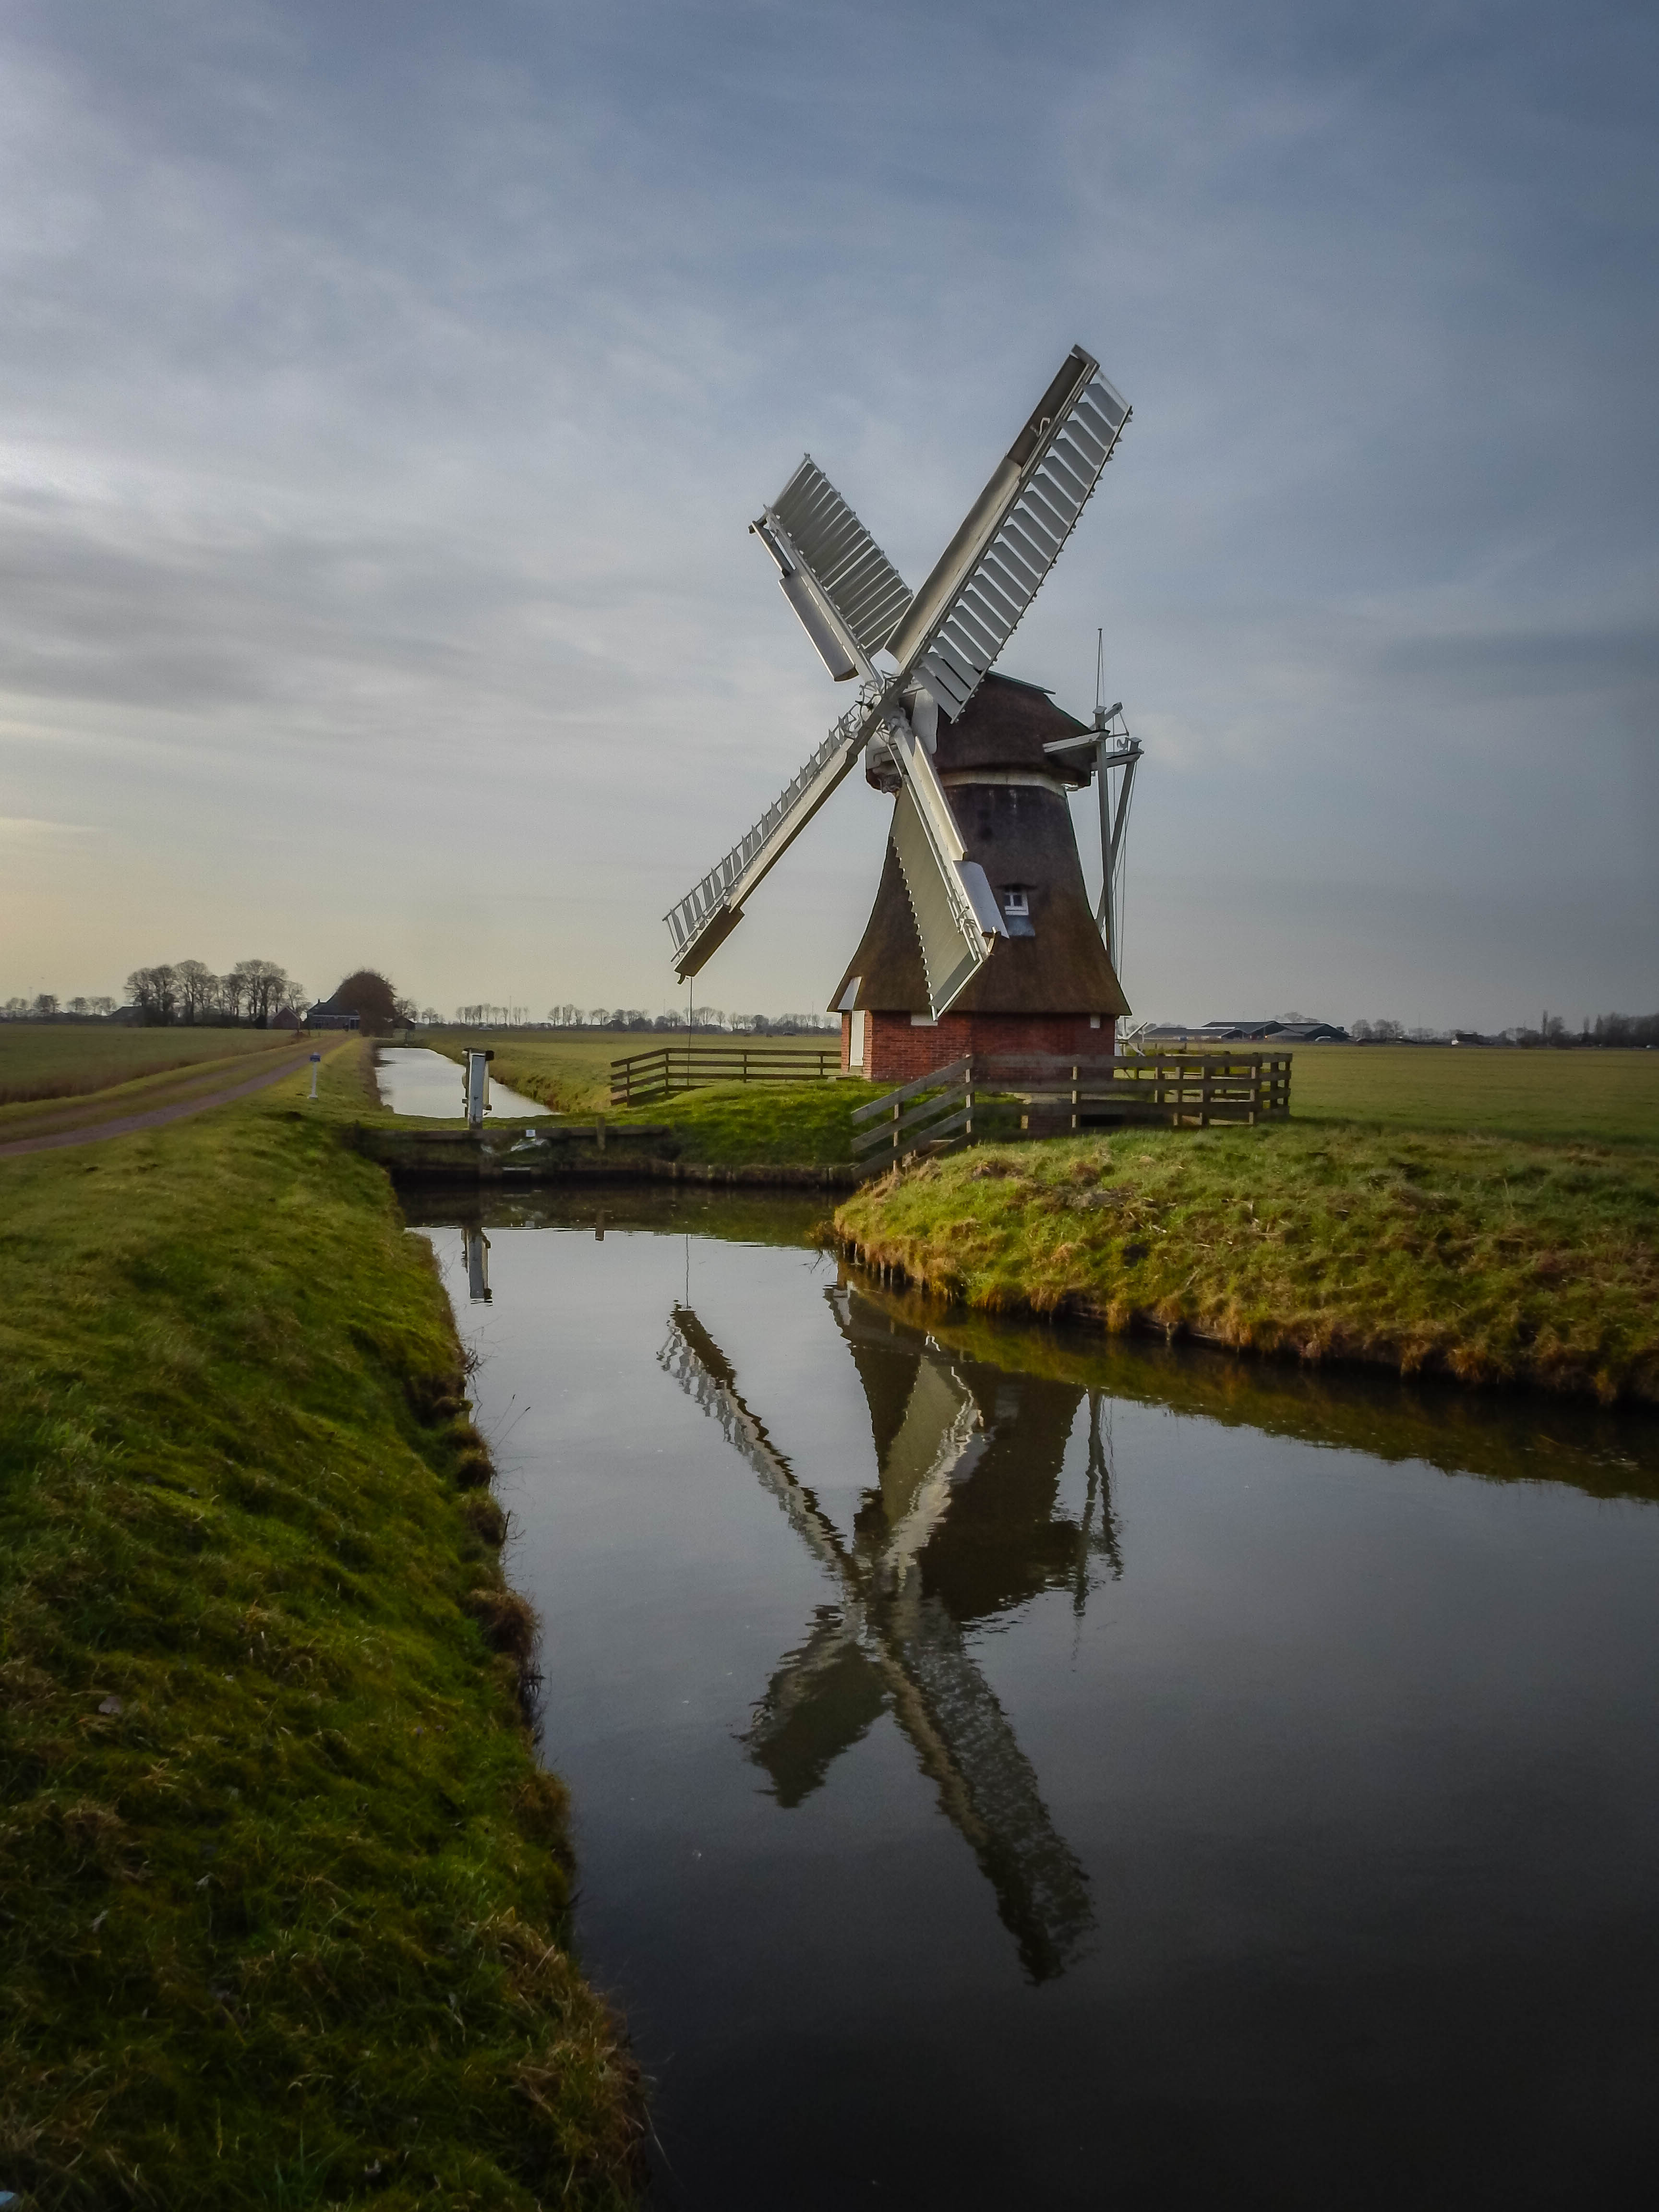 windmill near river under cloudy sky during daytime